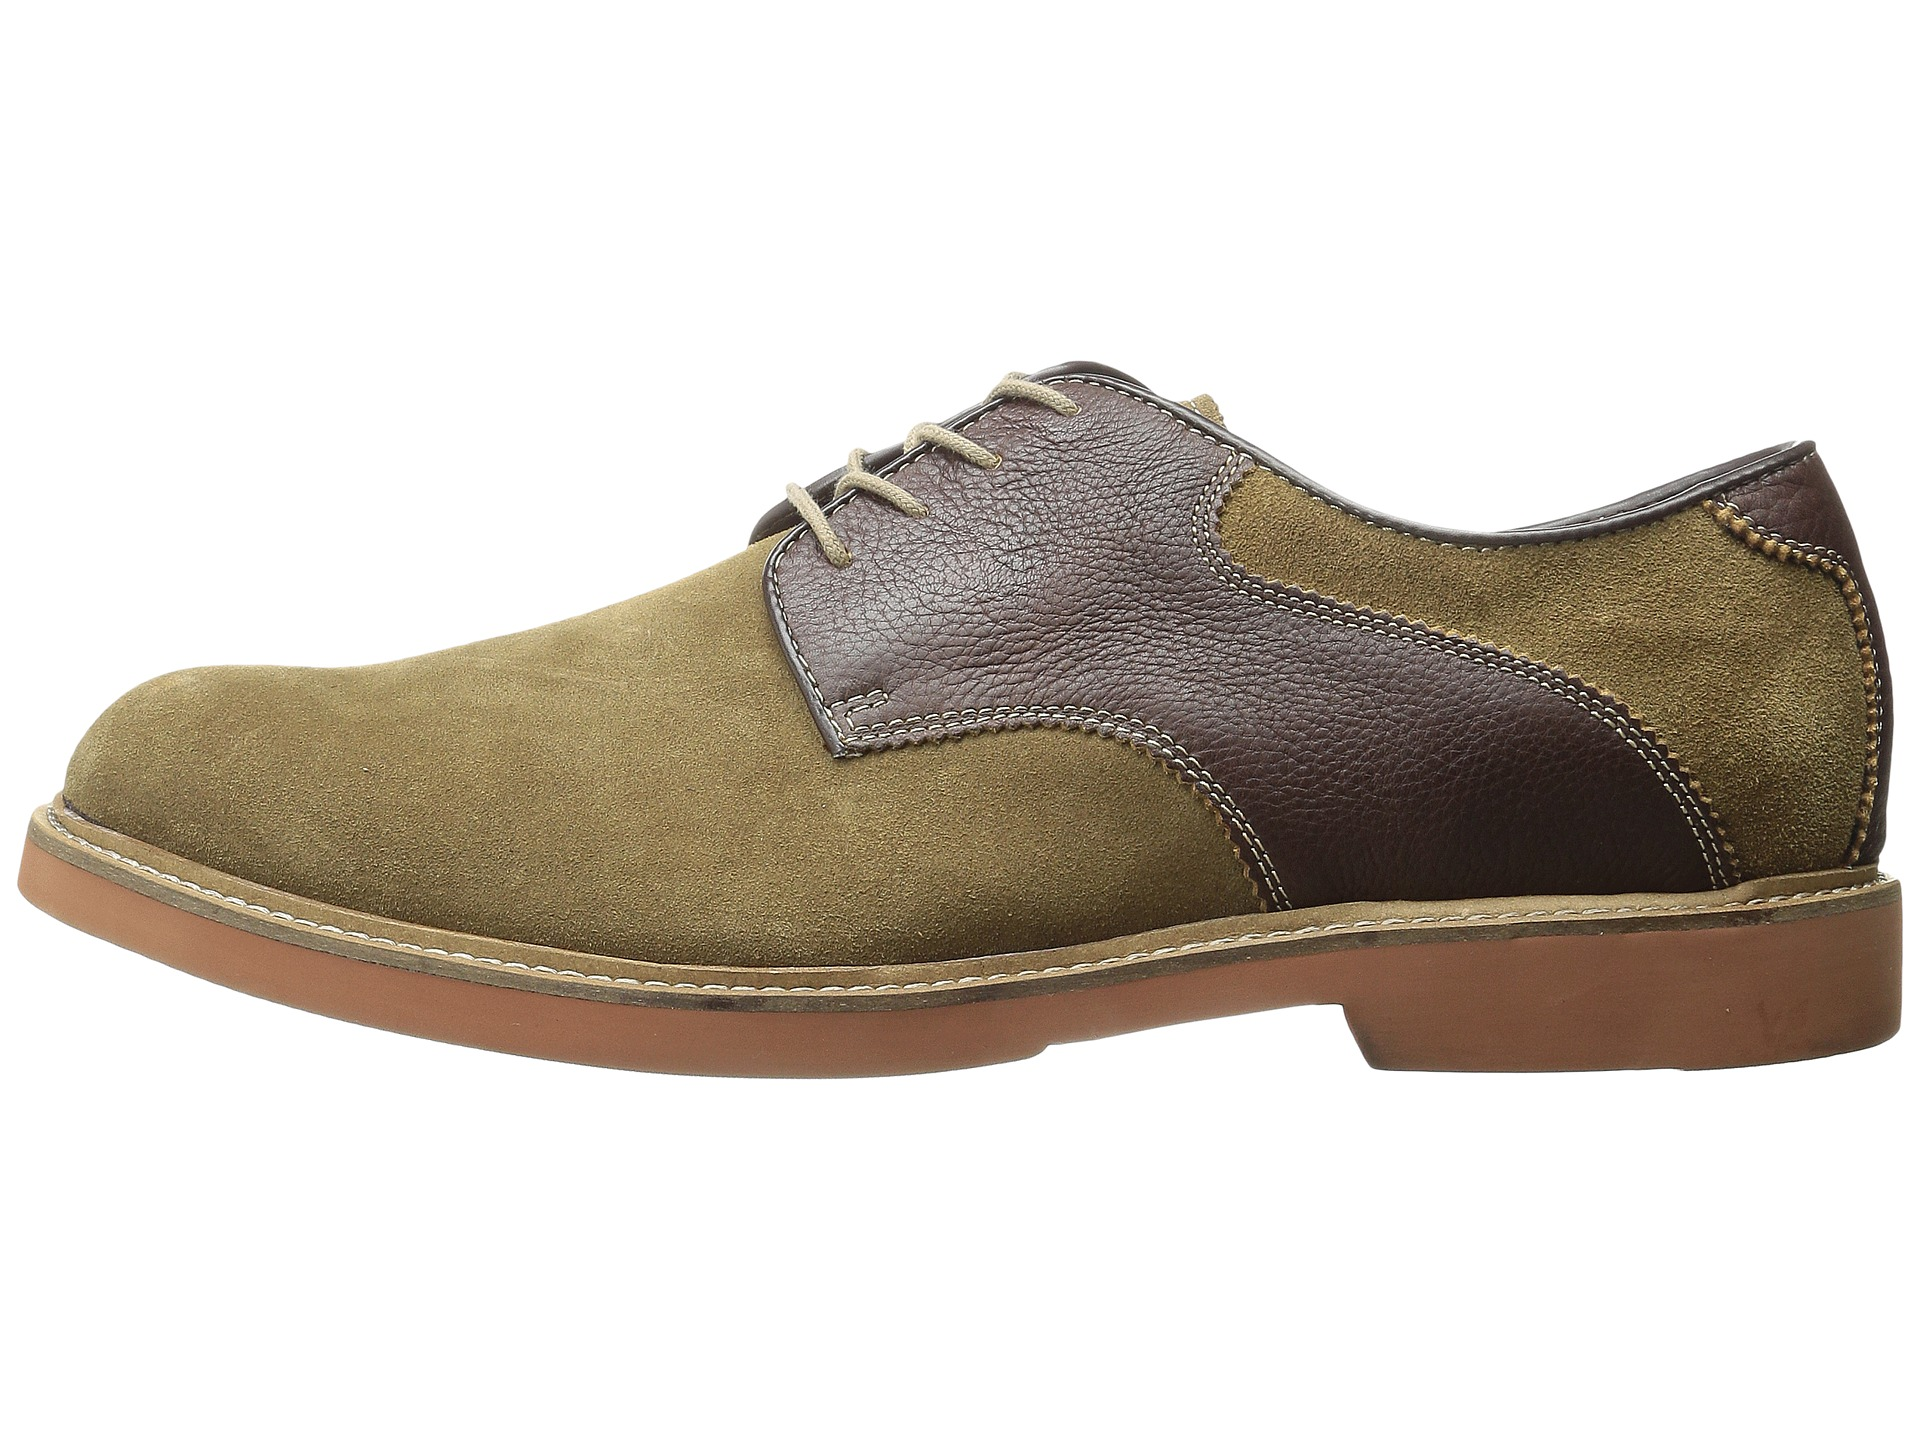 Womens Saddle Shoes Wide Width